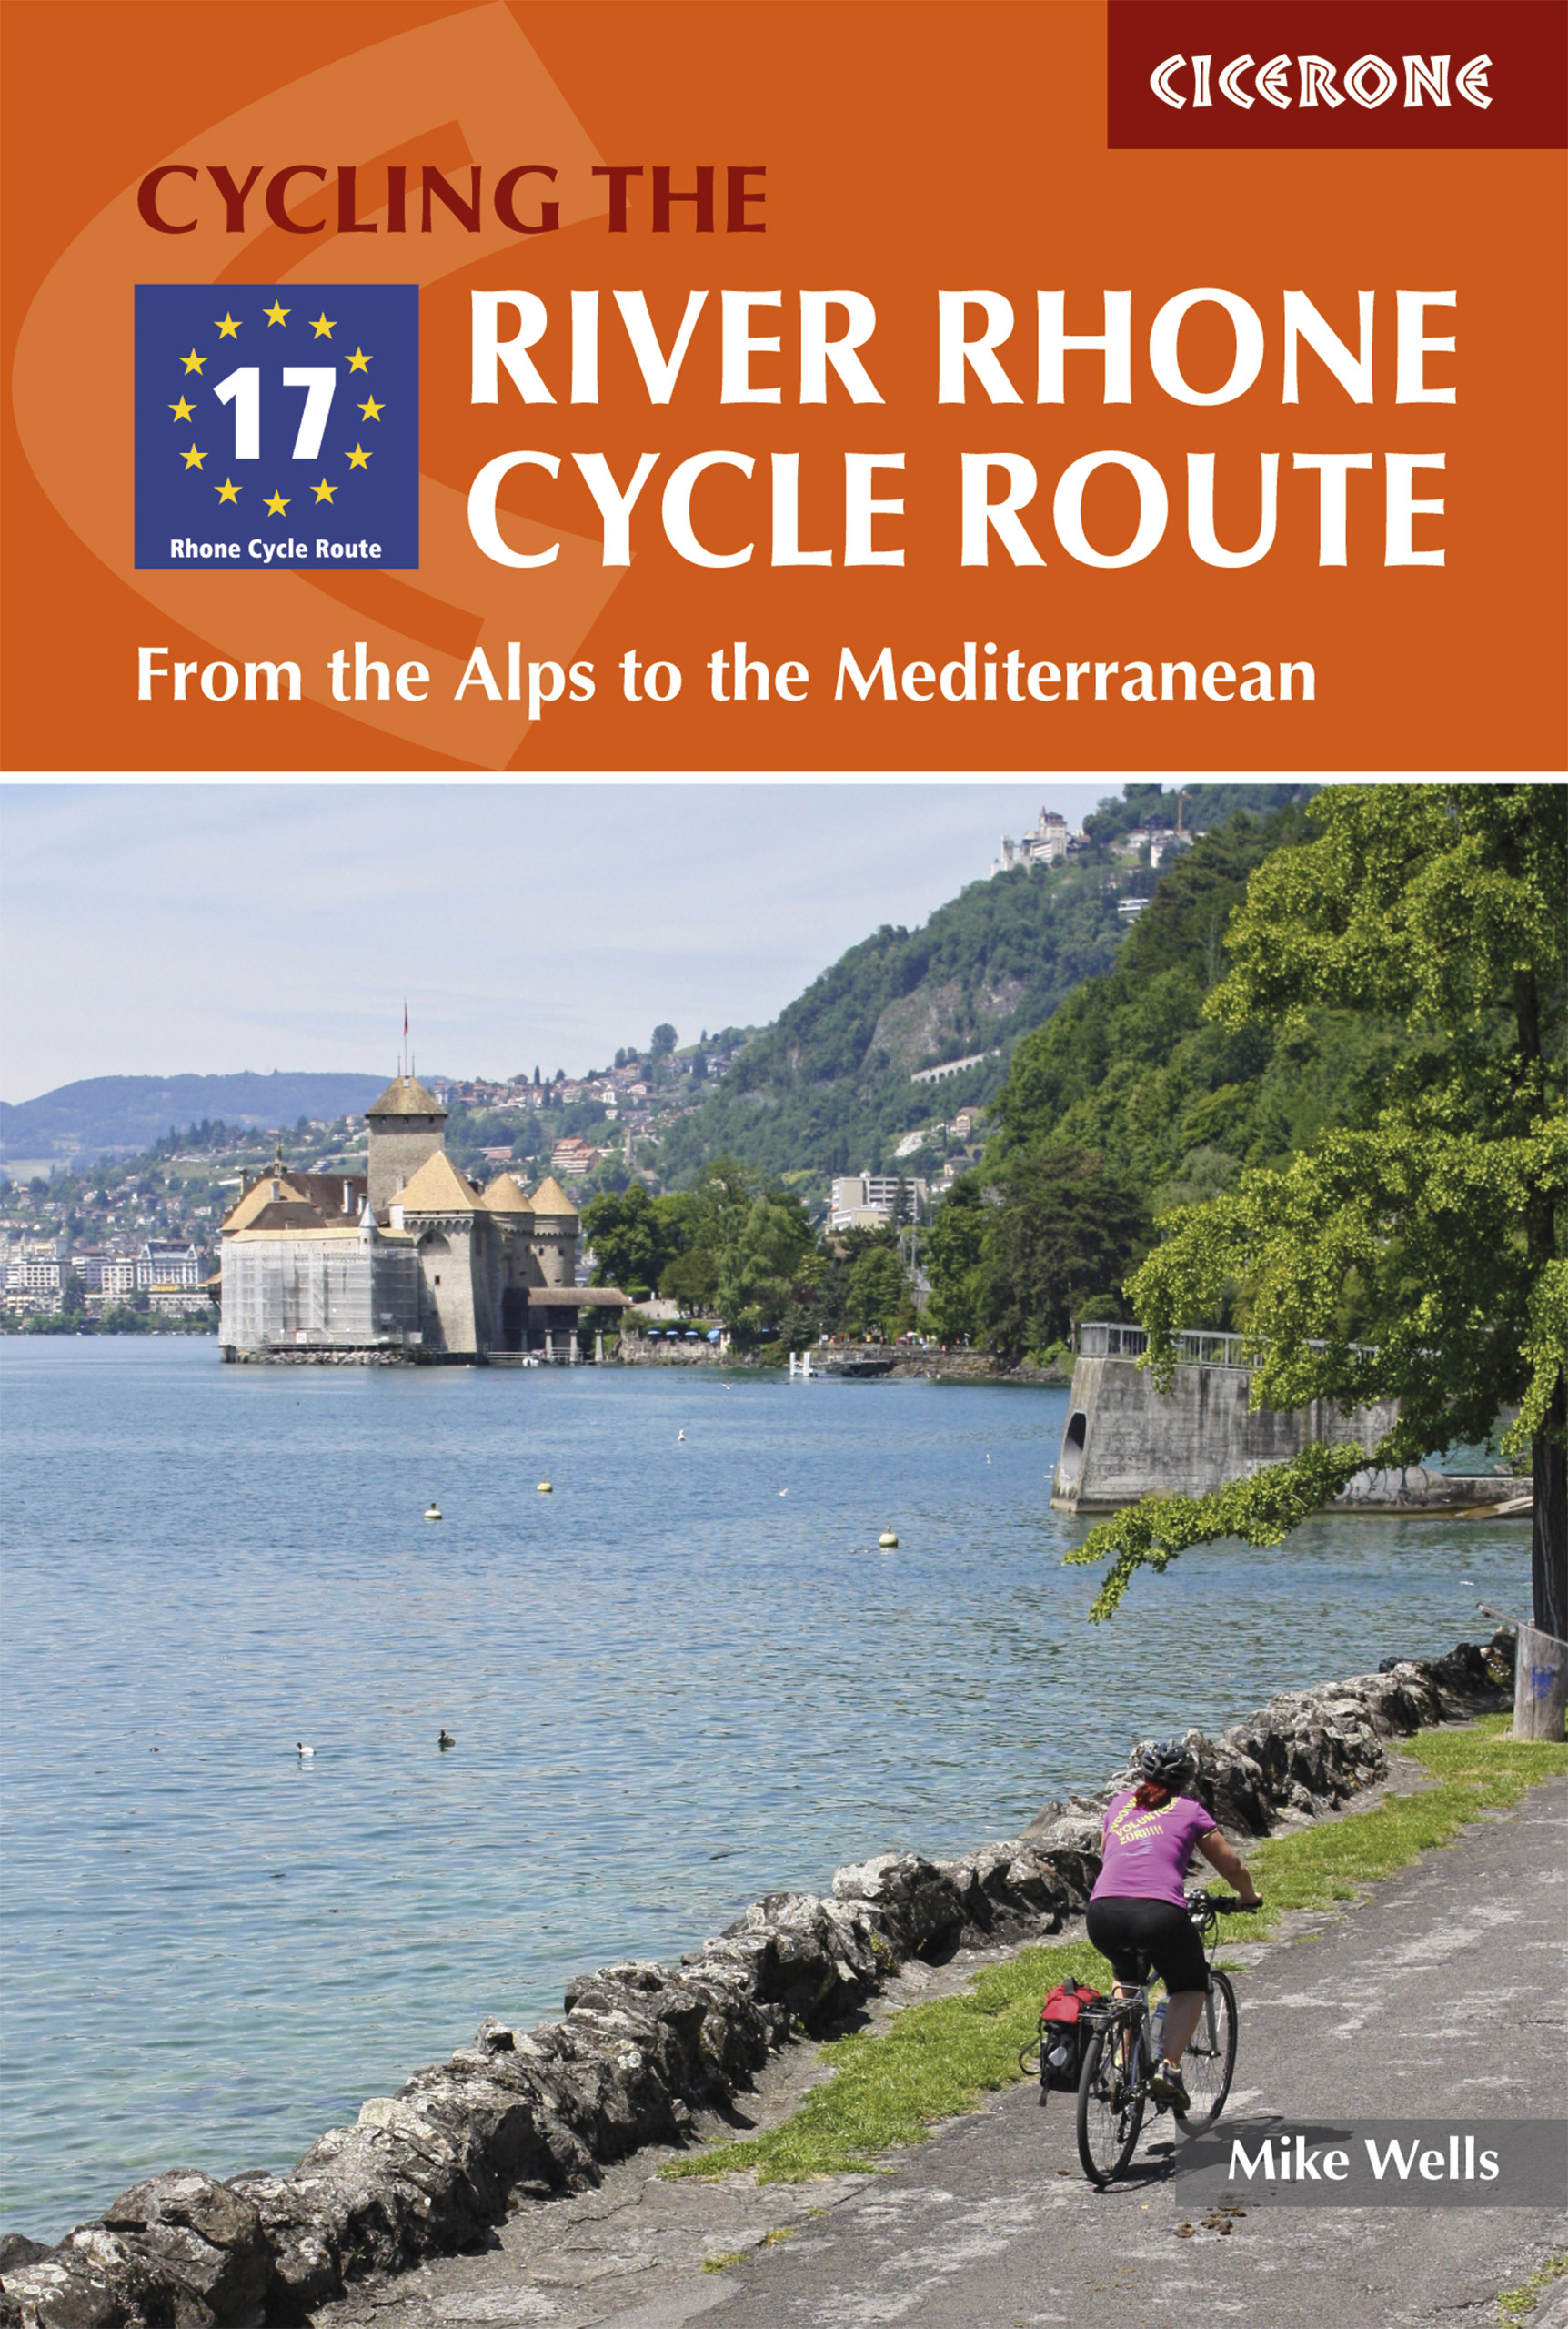 Cycling the River Rhone Cycle Route